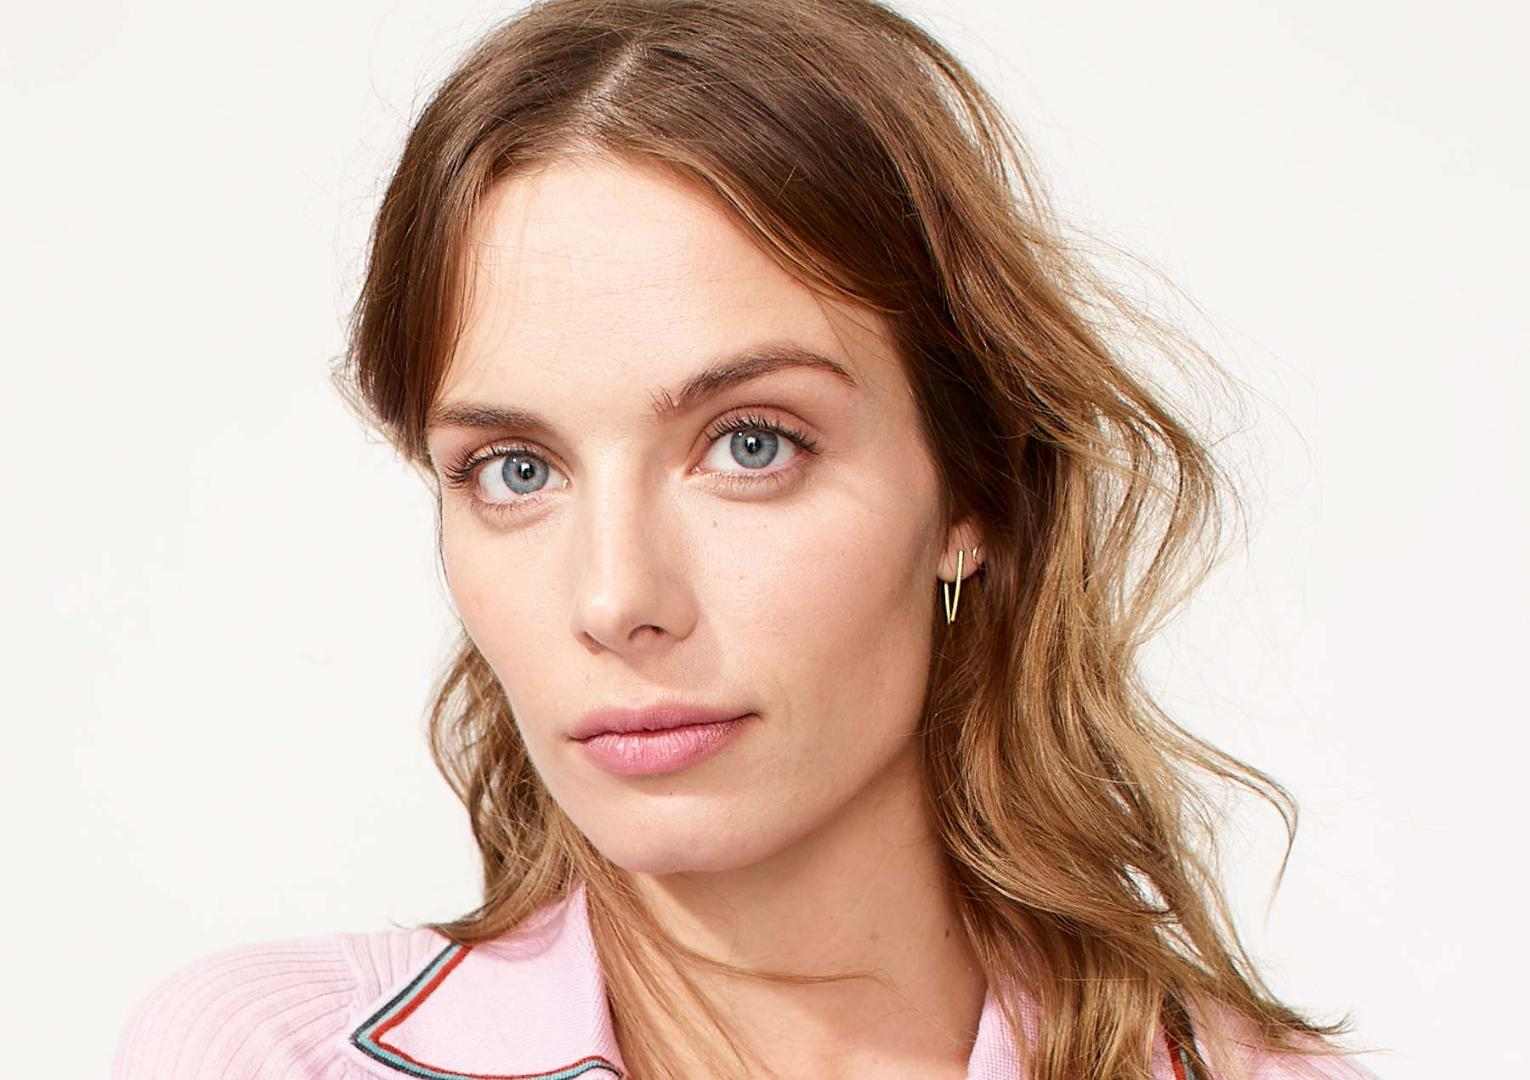 Eliminate Dark Under-Eye Circles with This Step-by-Step Tutorial on How to Apply Concealer